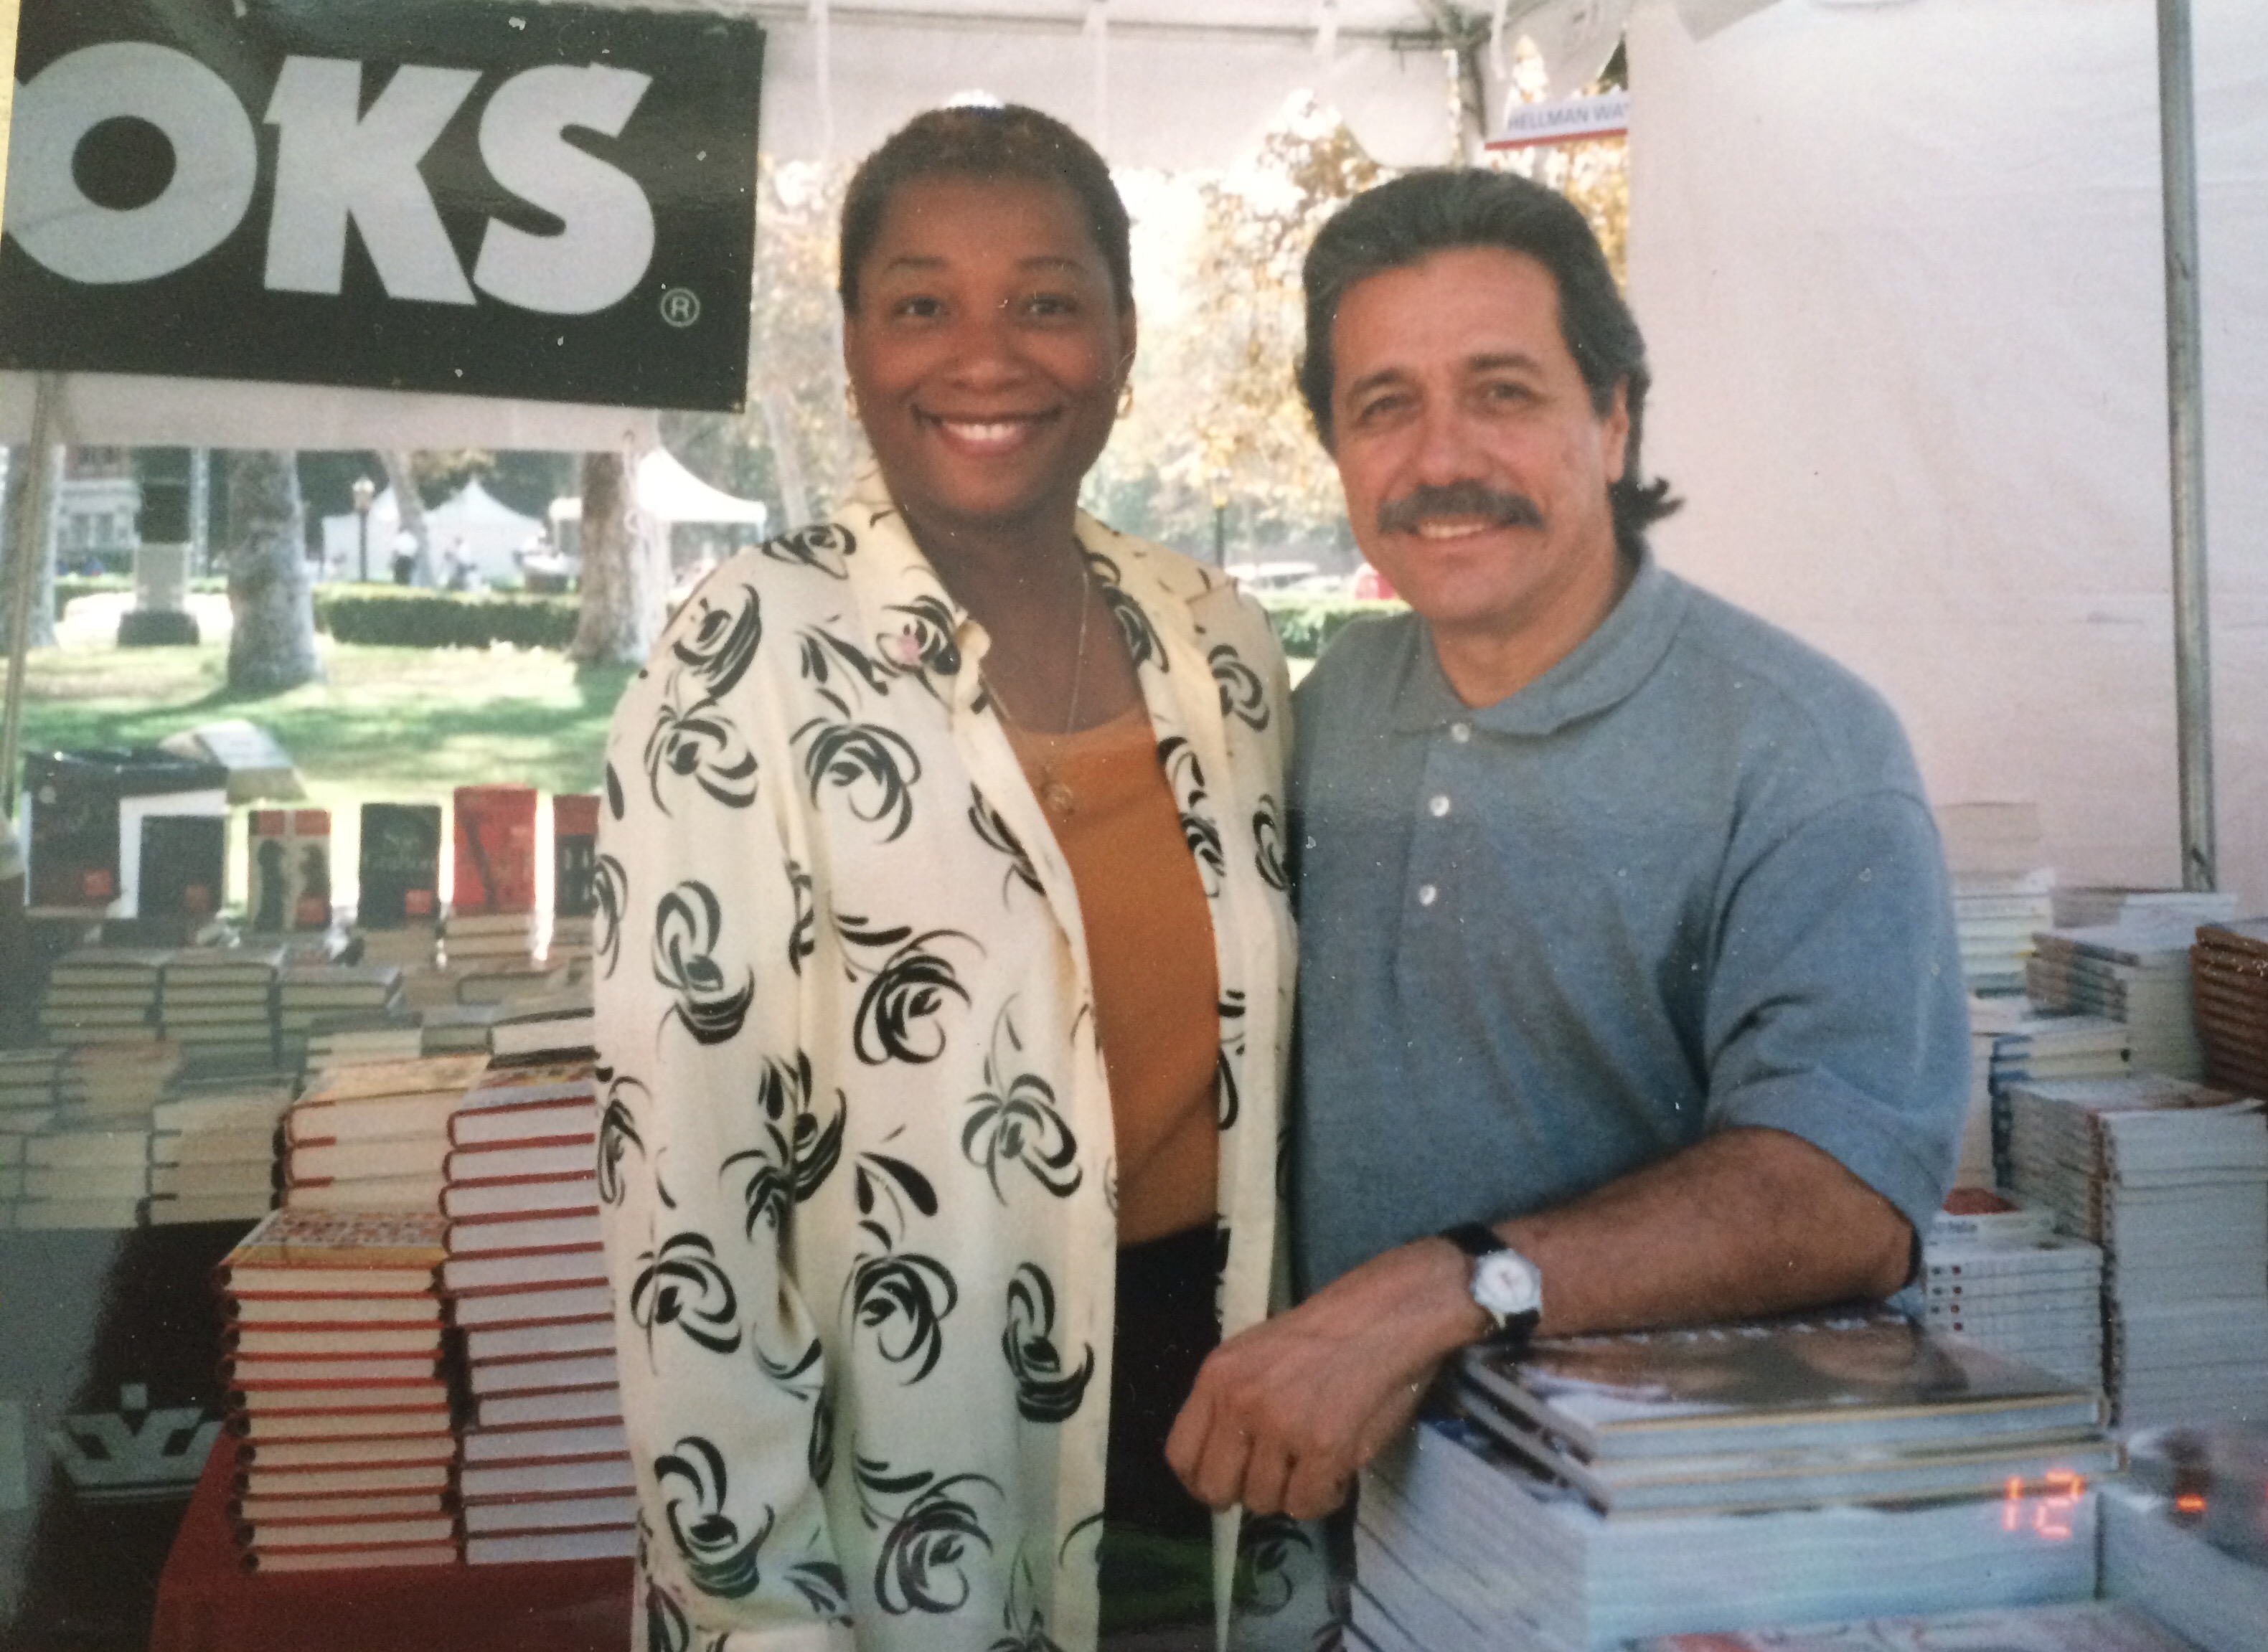 In October 1999 both Mr. James Olmos and I were among the many speakers and authors at the University of Southern California - USC in LA.